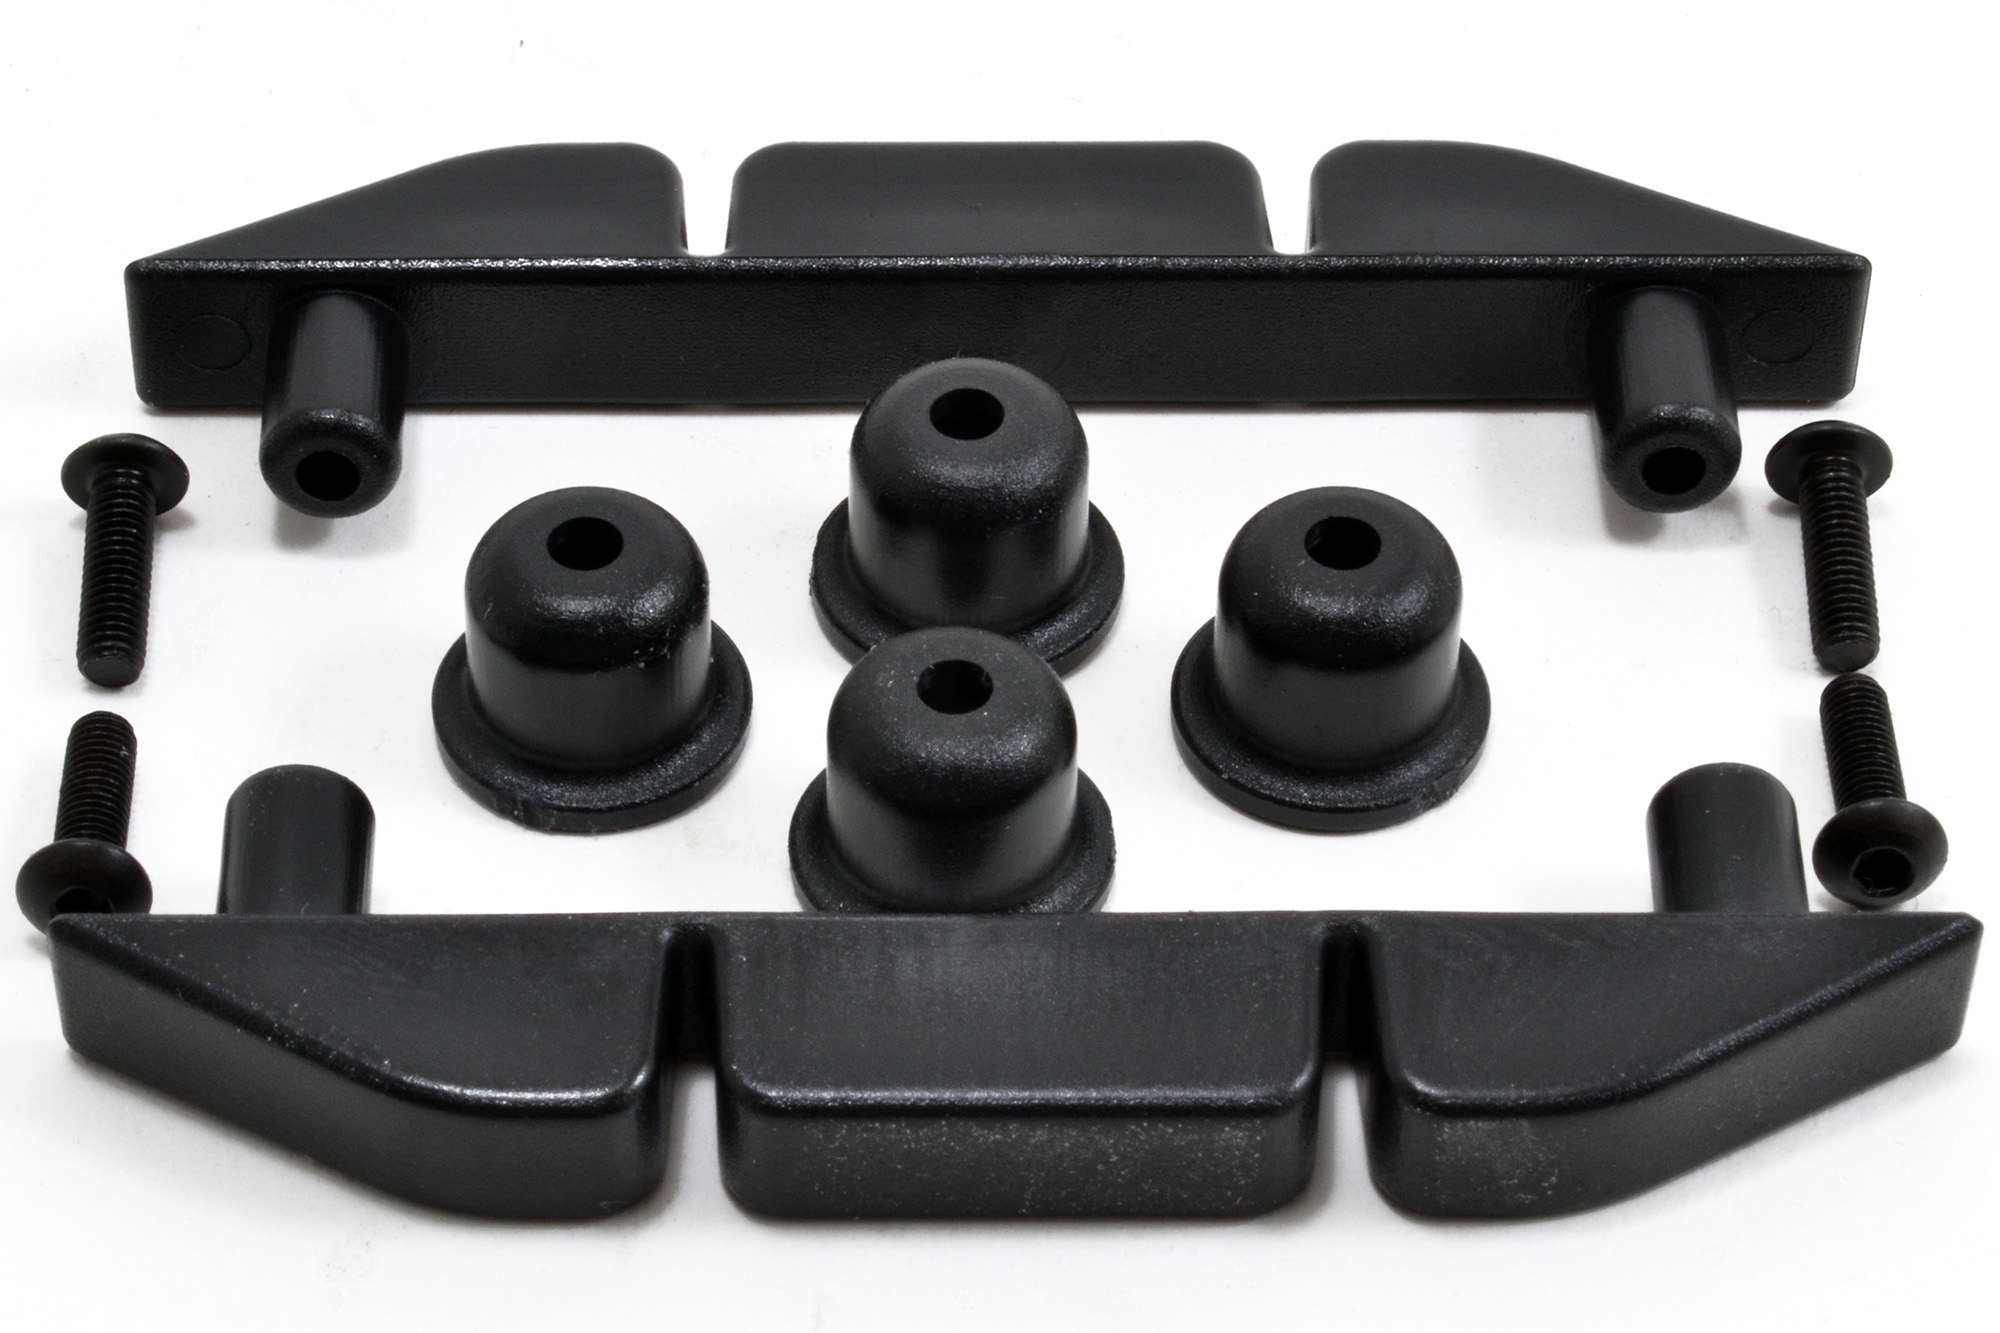 RPM Body Skid Rails With Near Universal Fit